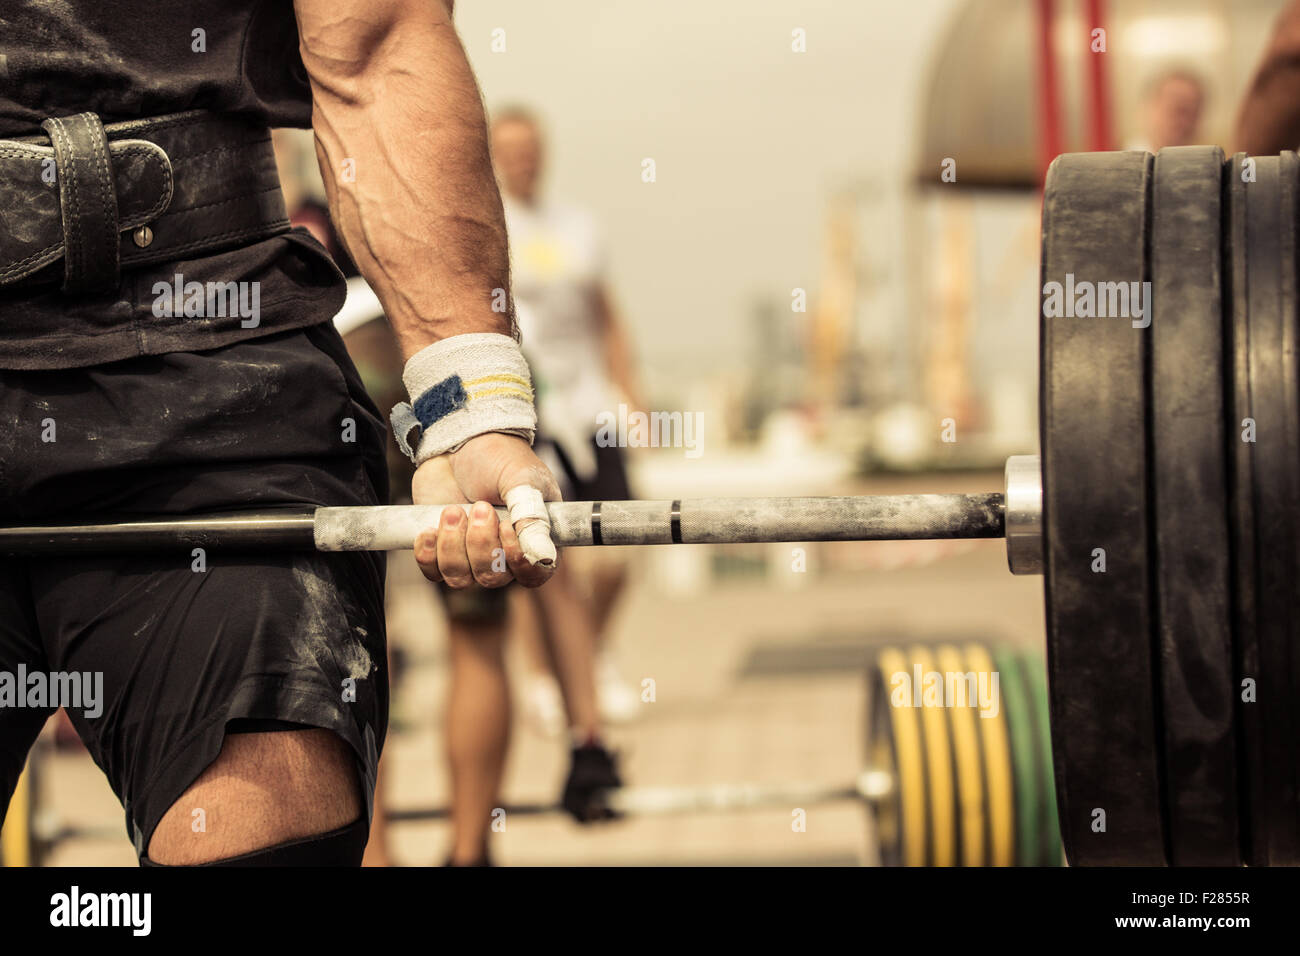 Closeup portrait of professional bodybuilder workout with barbell outdoors - Stock Image